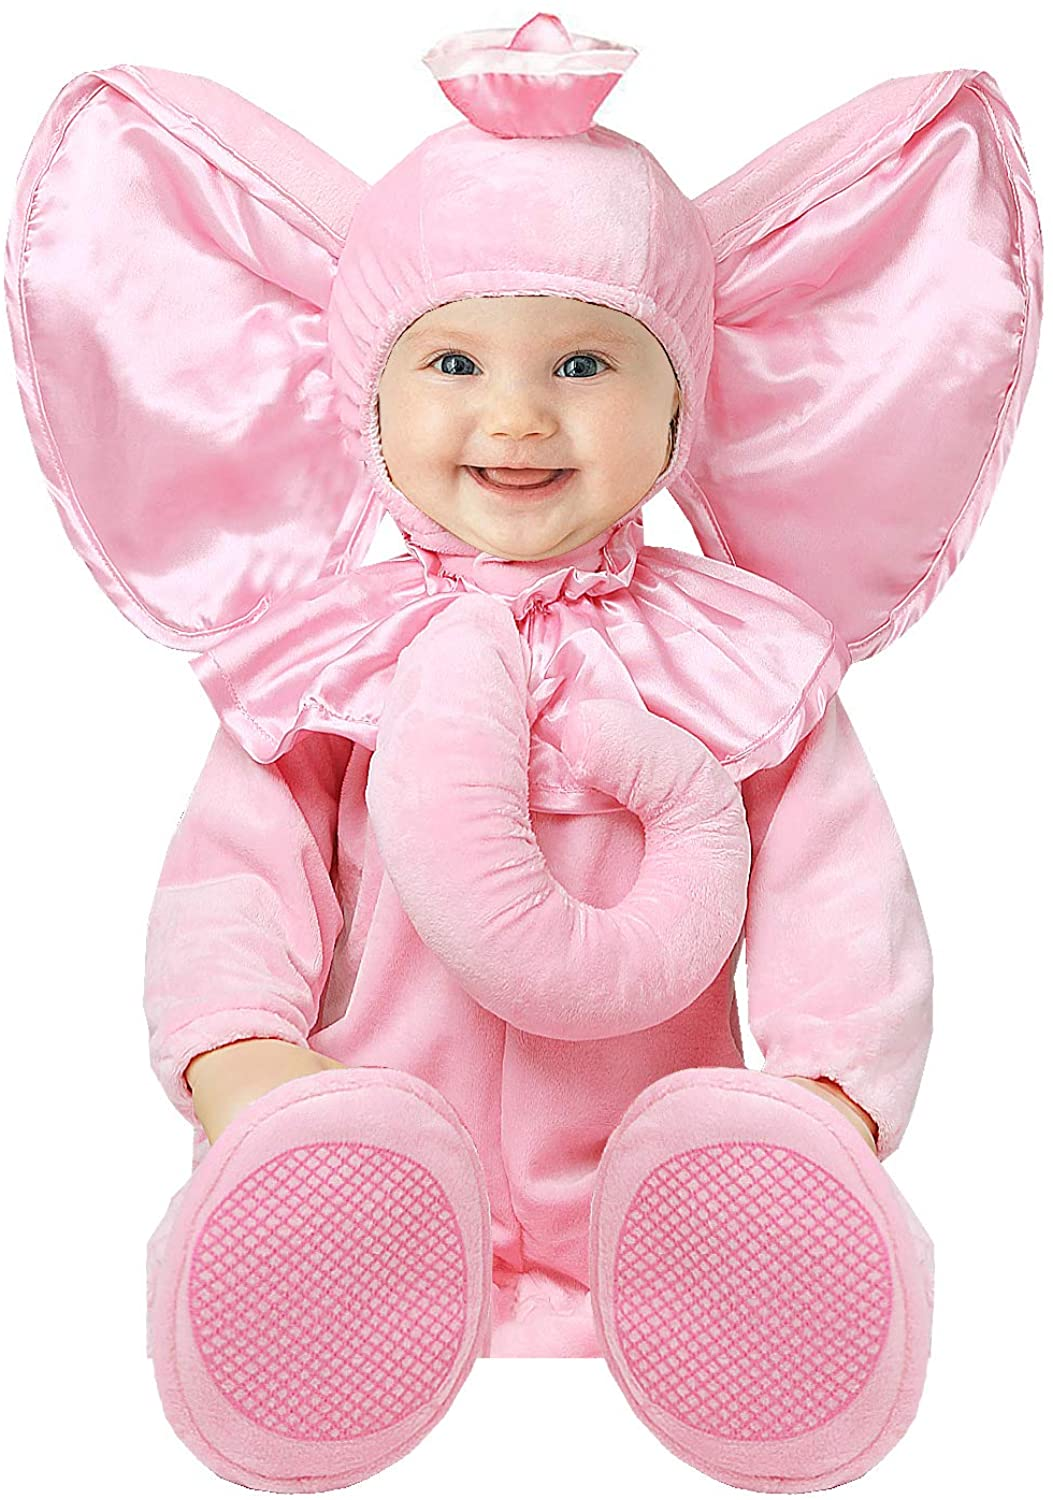 Toddler Baby Infant Girl Pink Elephant Halloween Dress Up Costume Outfit